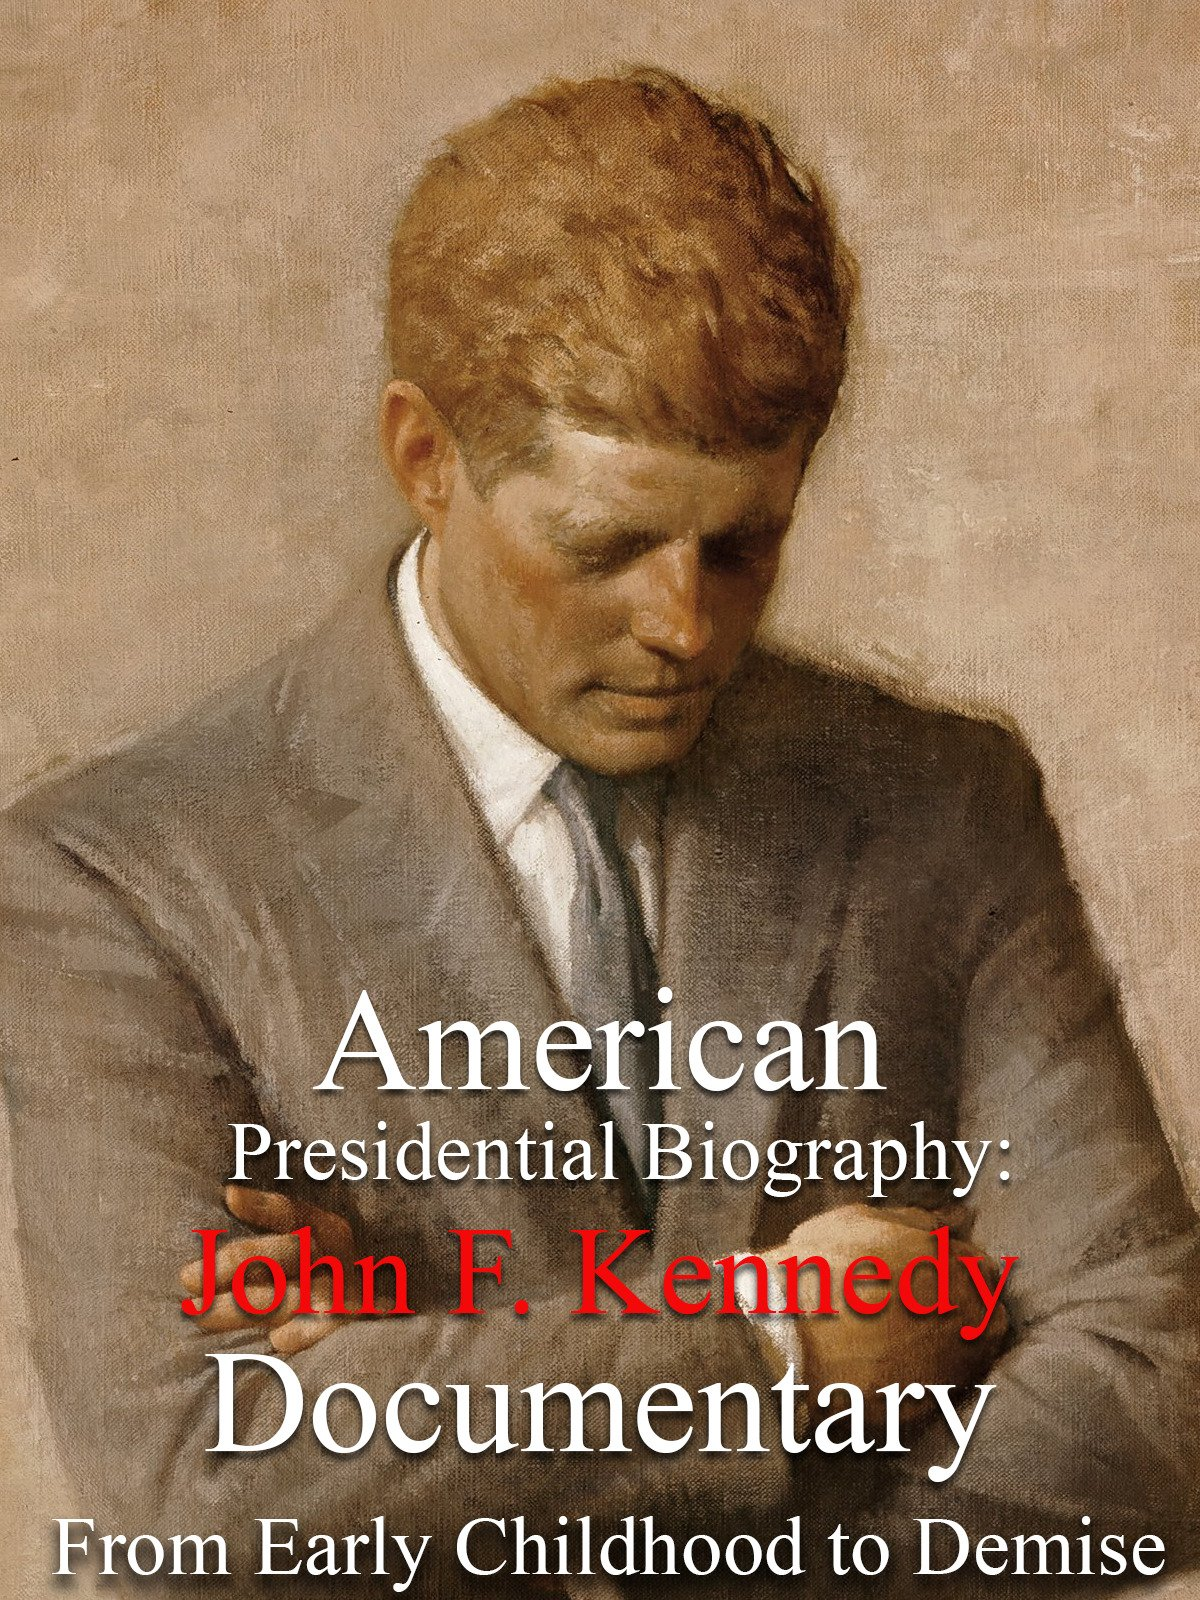 American Presidential Biography: John F. Kennedy Documentary From Early Childhood to Demise